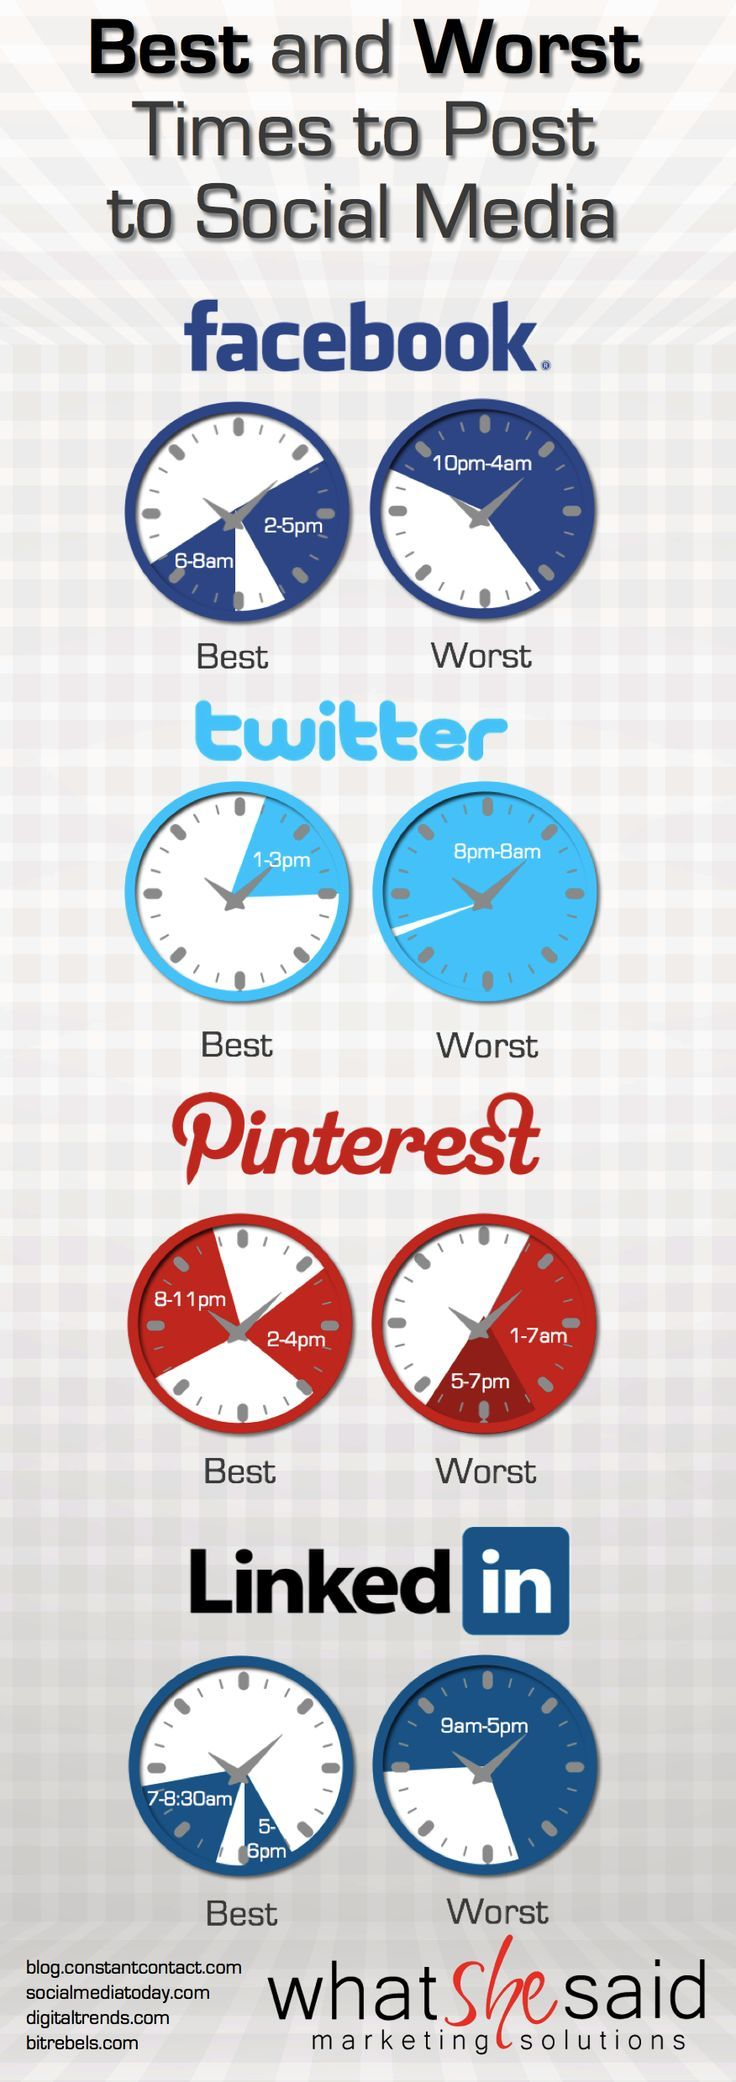 Best and Worst Times to... #Social Media Marketing, Social Media #Marketing. #Time to post  http://www.AlanAndCarolineBean.com